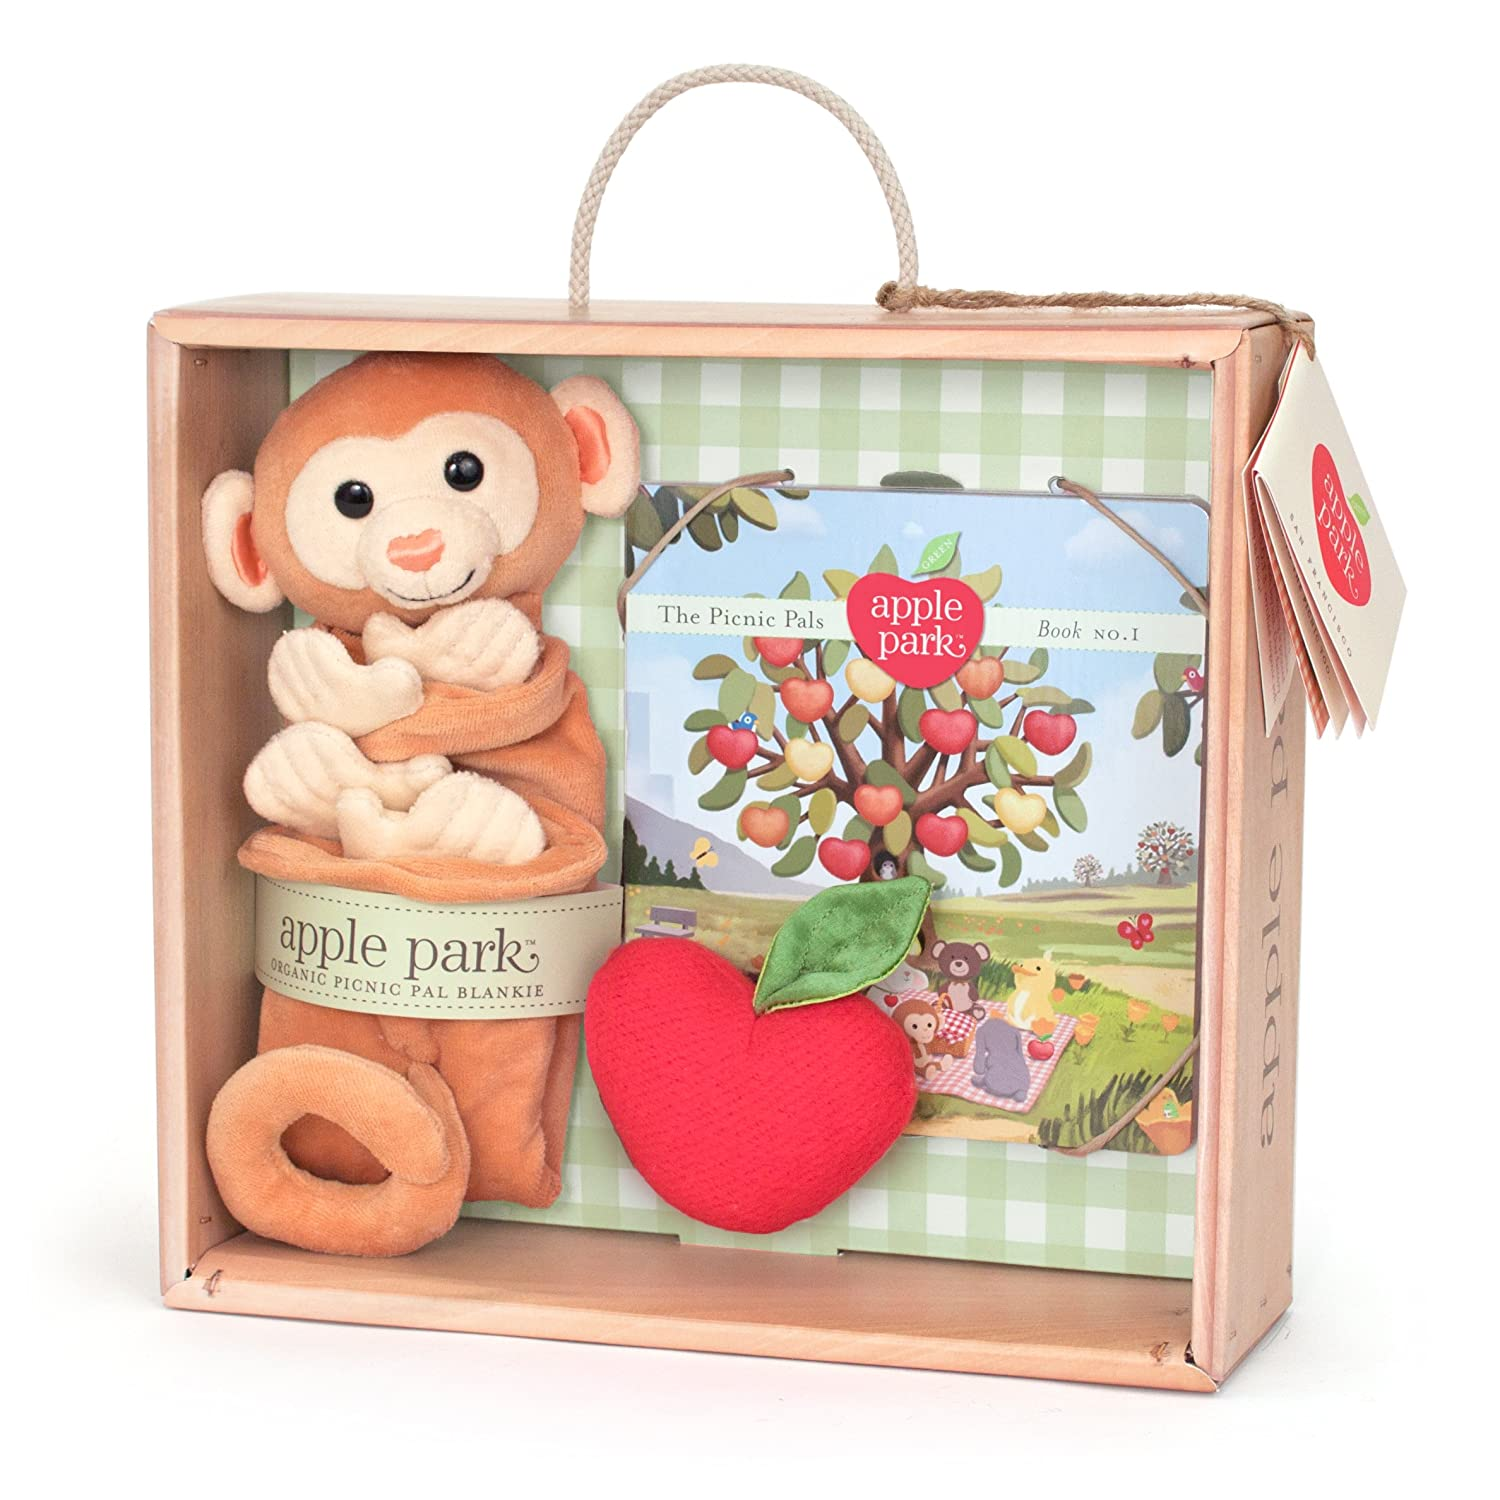 Apple Park Blankie Book and Rattle Gift Crate, Monkey (Discontinued by Manufacturer) by Apple Park